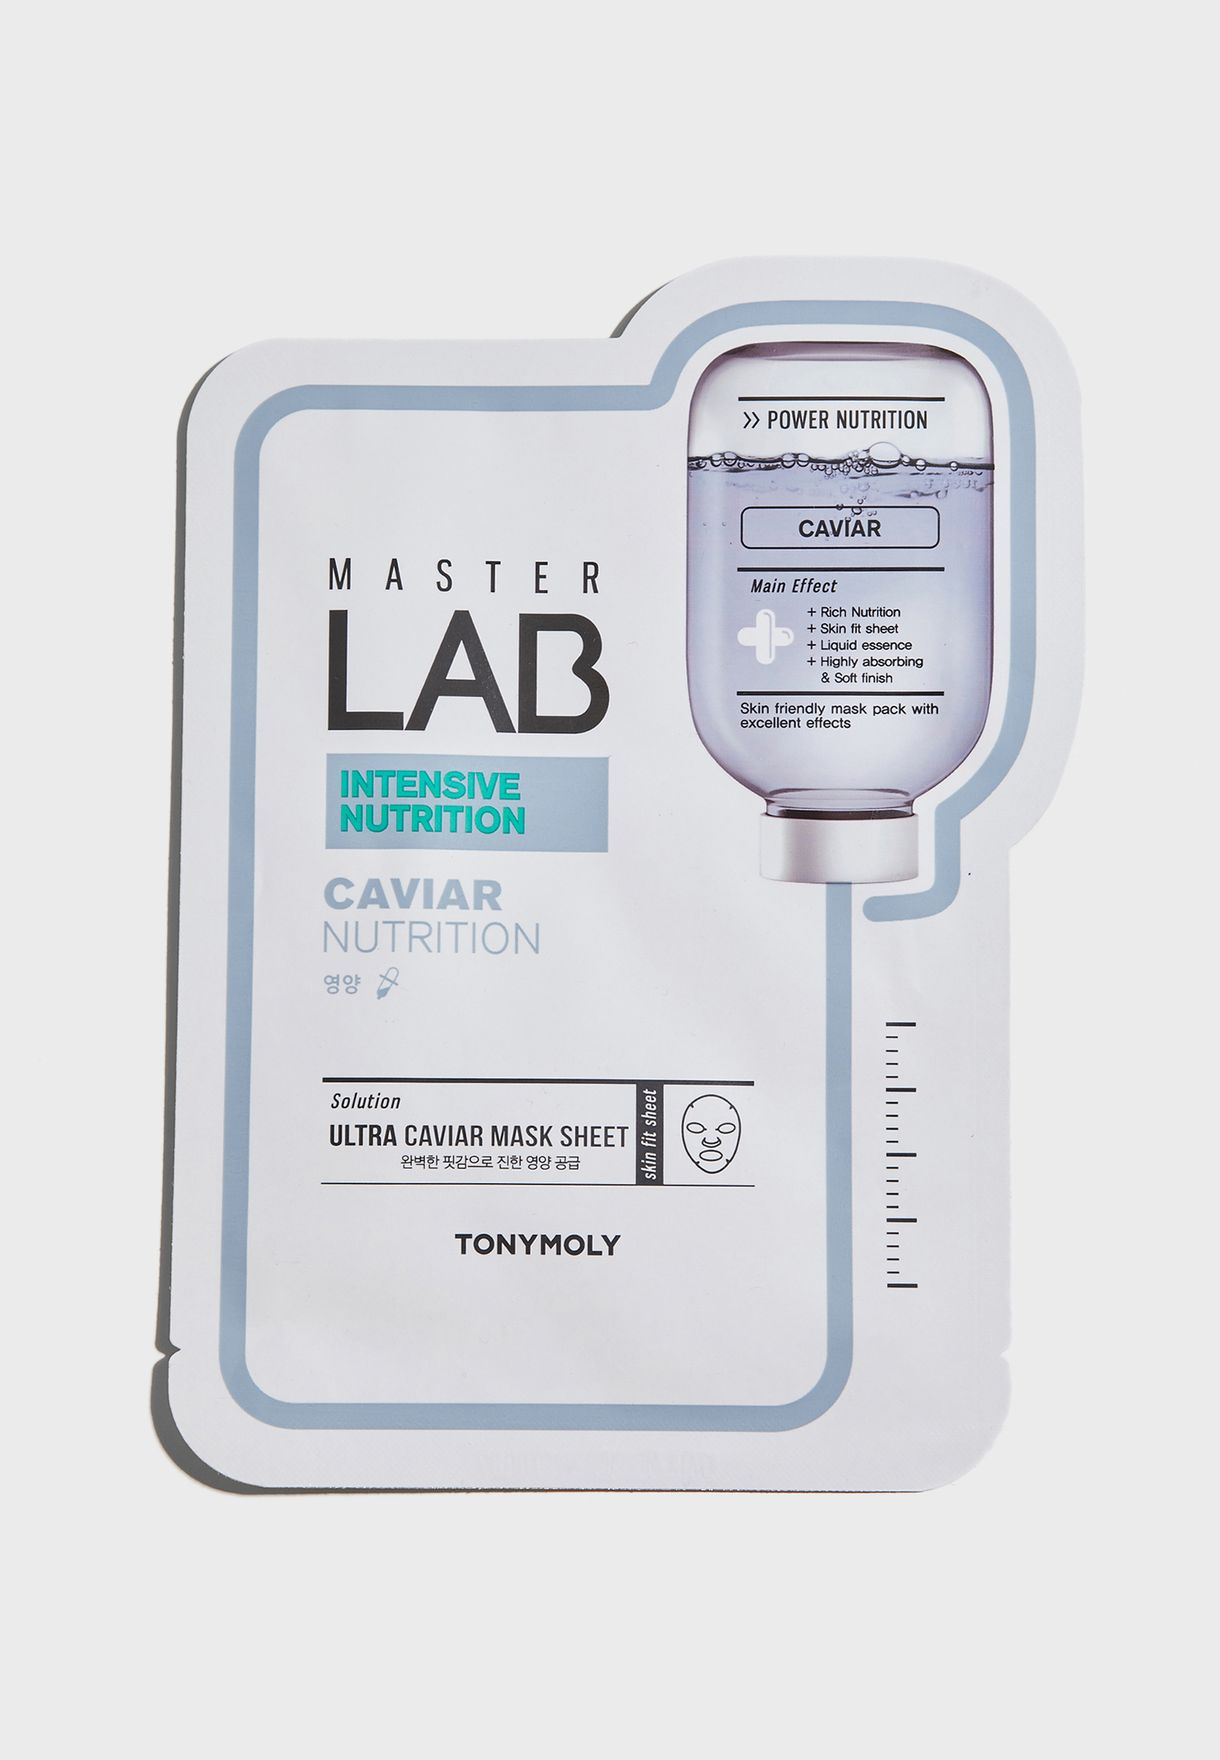 Master Lab Caviar Mask Sheet